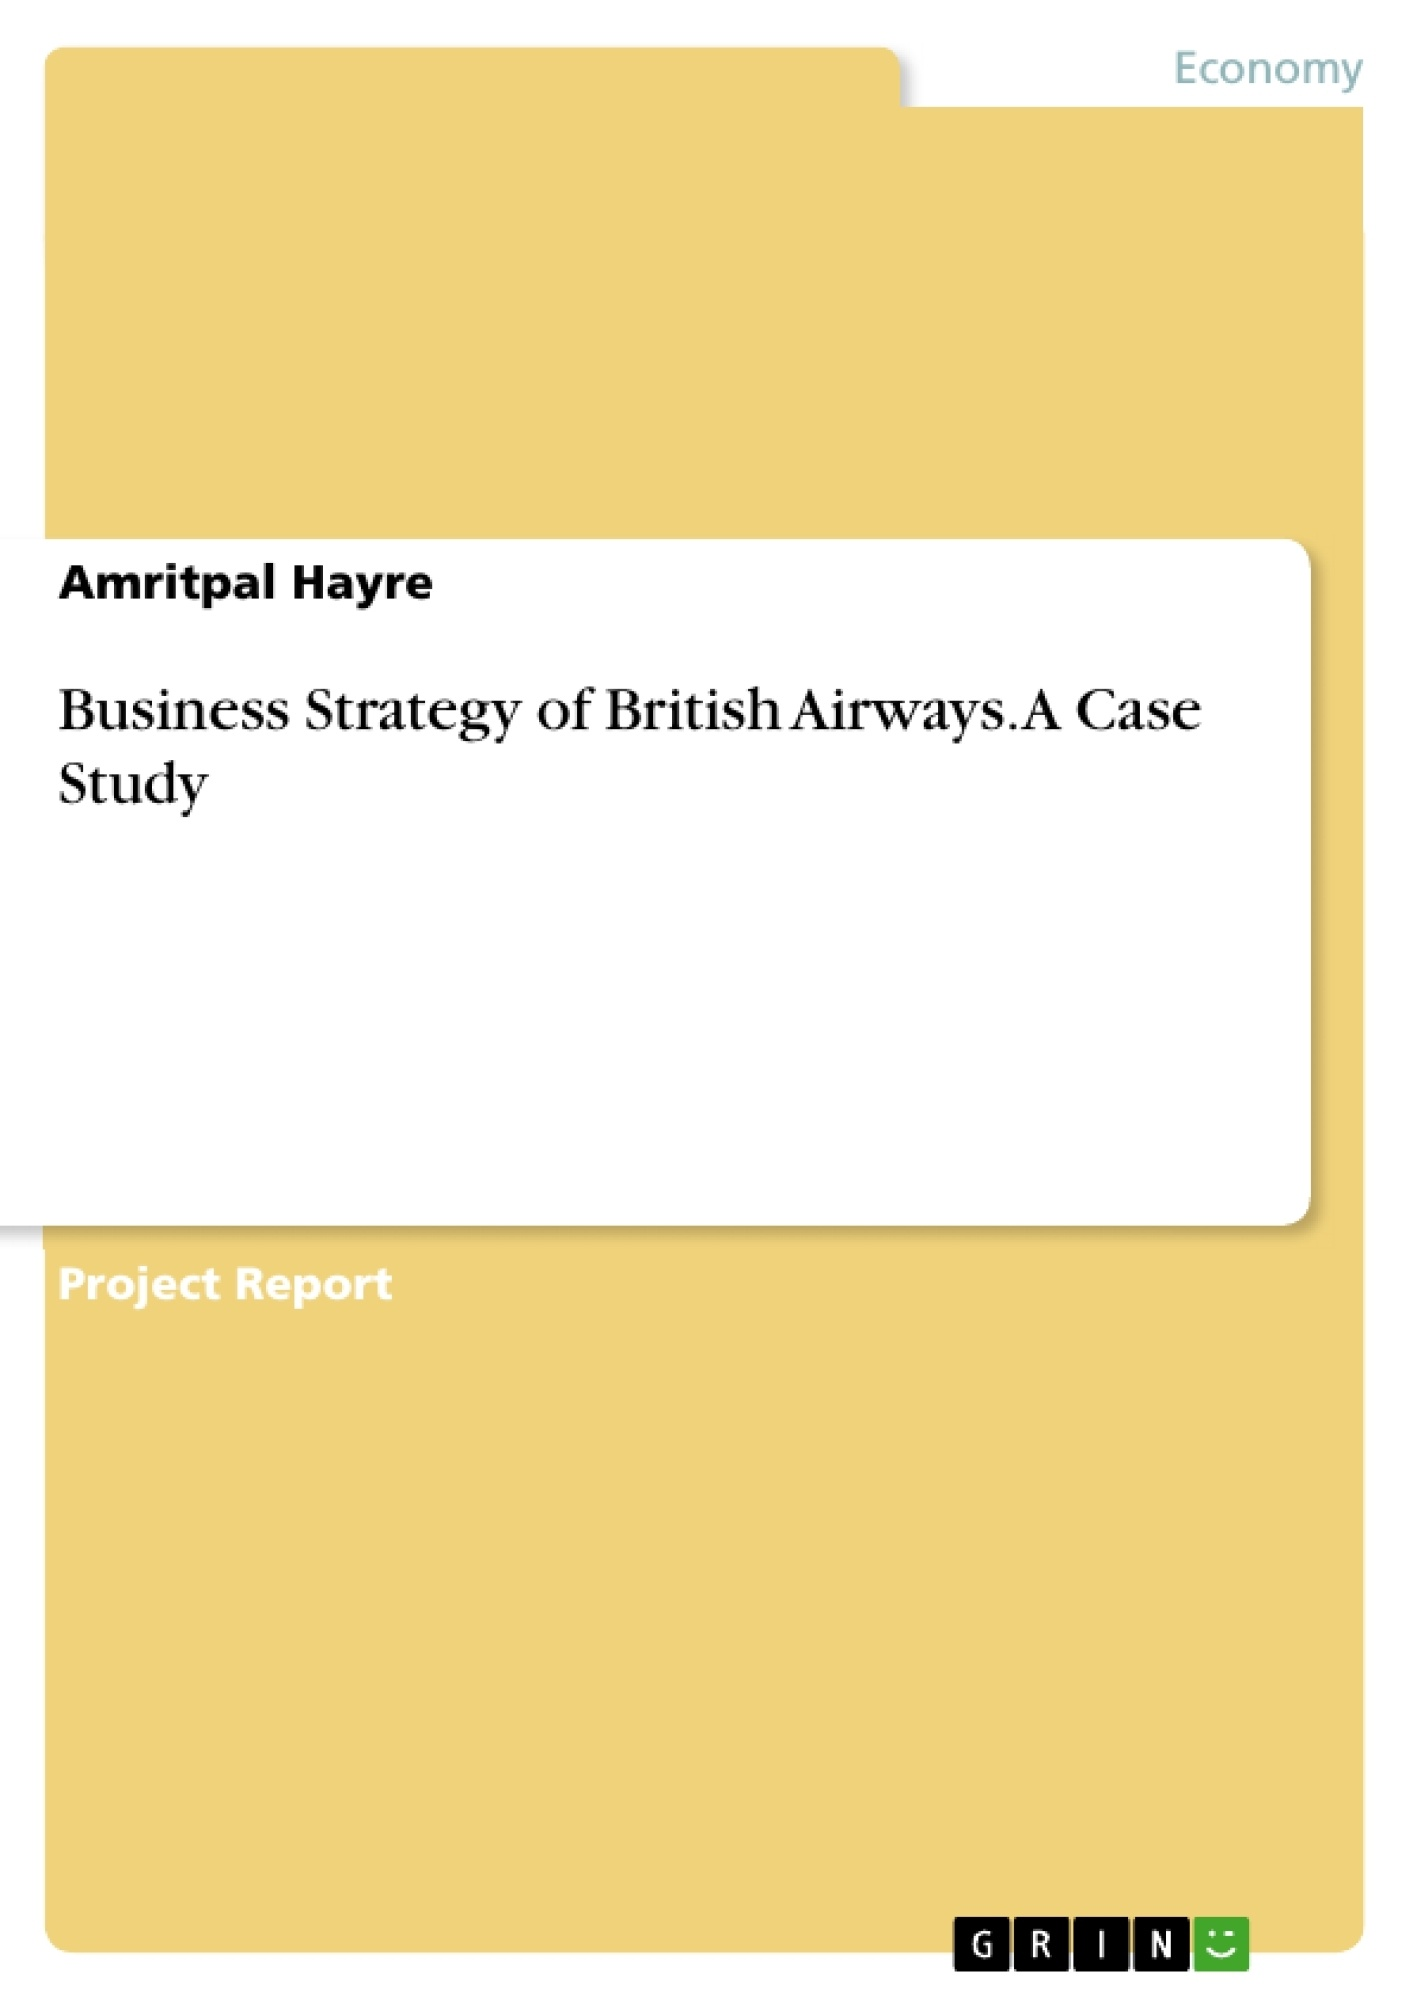 Title: Business Strategy of British Airways. A Case Study